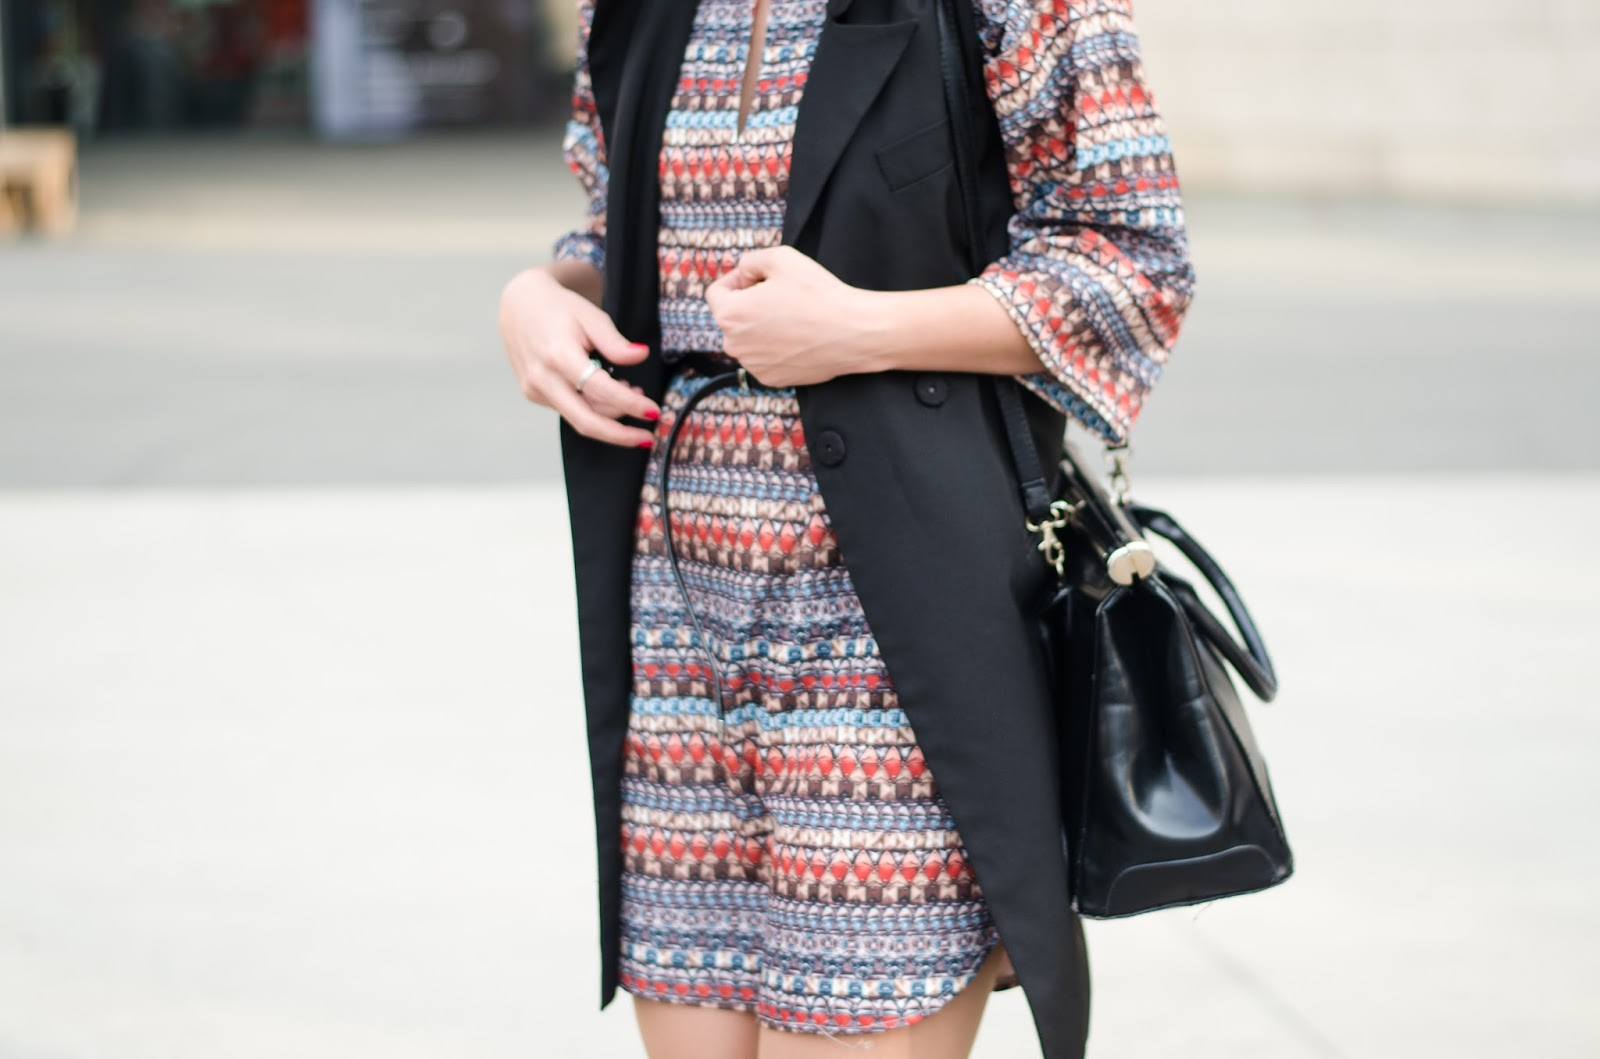 Boho pattern dress, black vest, laced up high heels